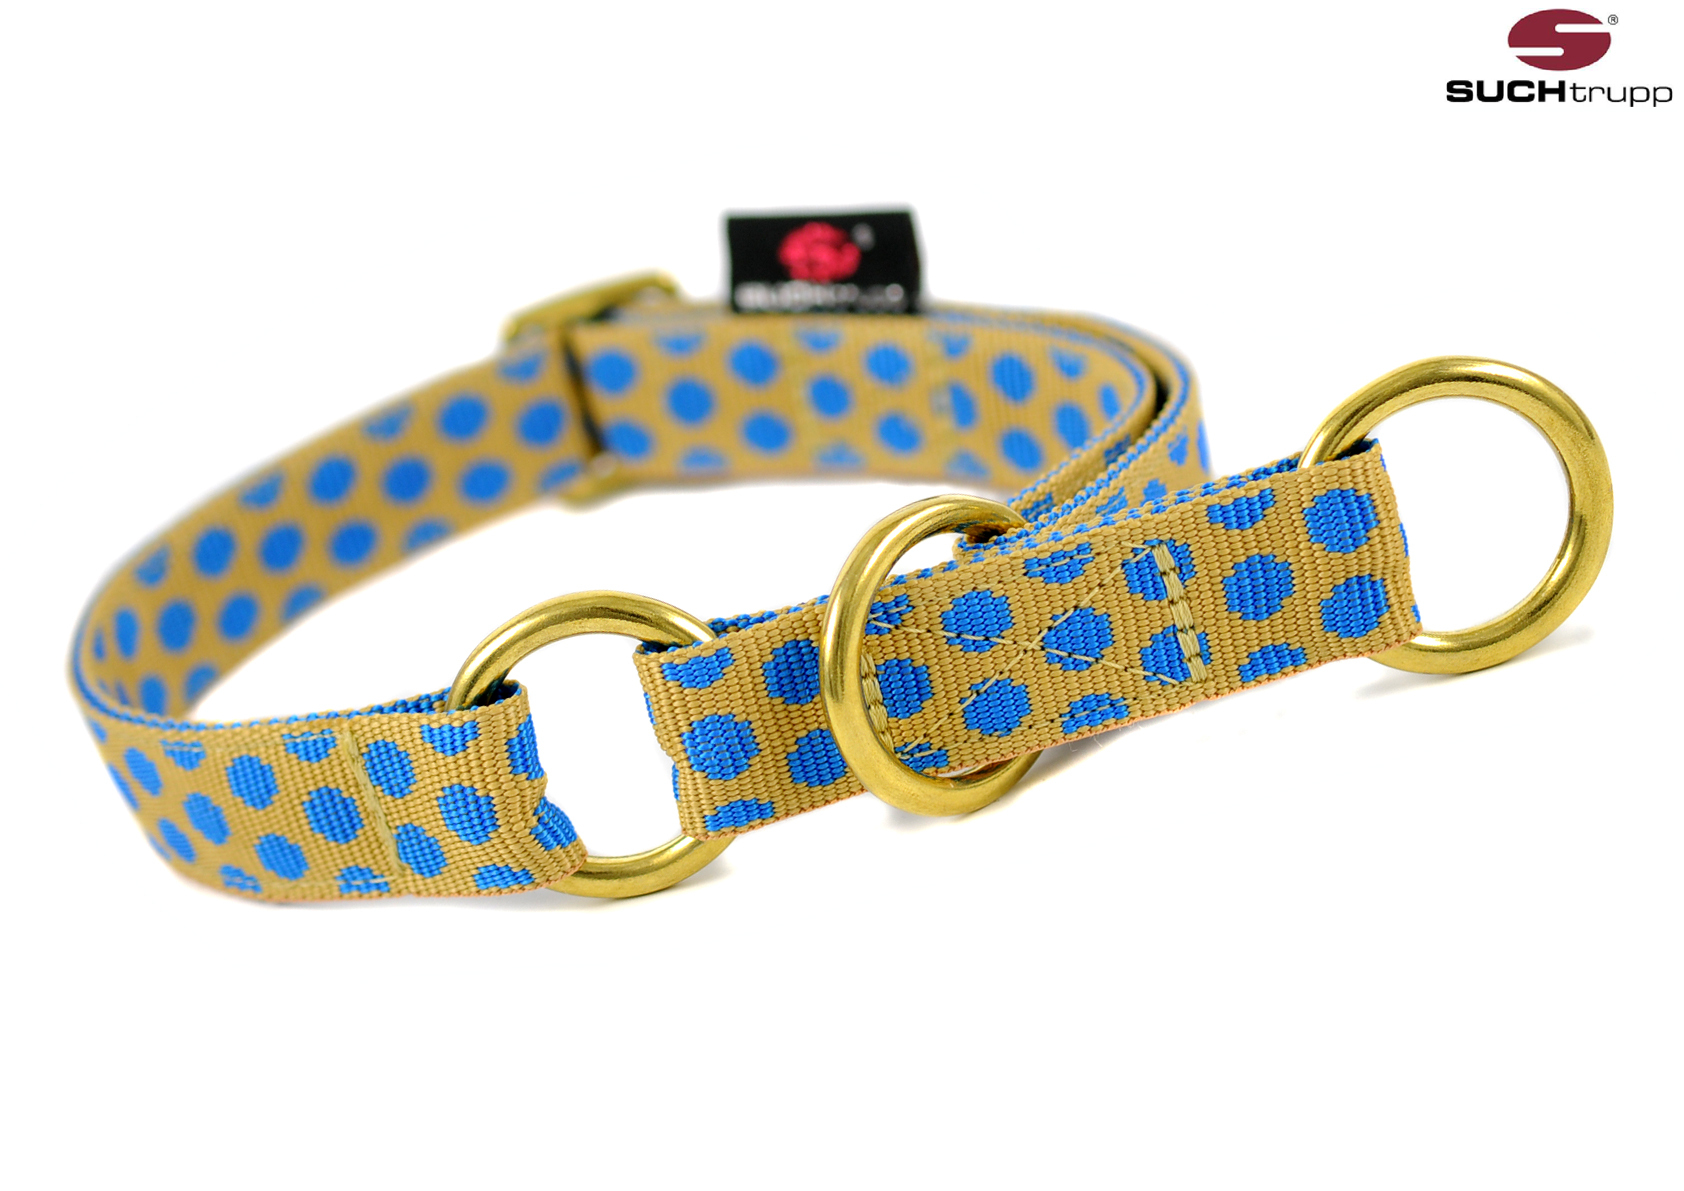 DOTS_BEIGE-ROYALBLUE_GOLDEN_Schlupfhalsbaender_medium,_SUCHtrupp,_Schlupfhalsband,_Stopp-Halsbaender,_martingale_collar_medium,_oblique